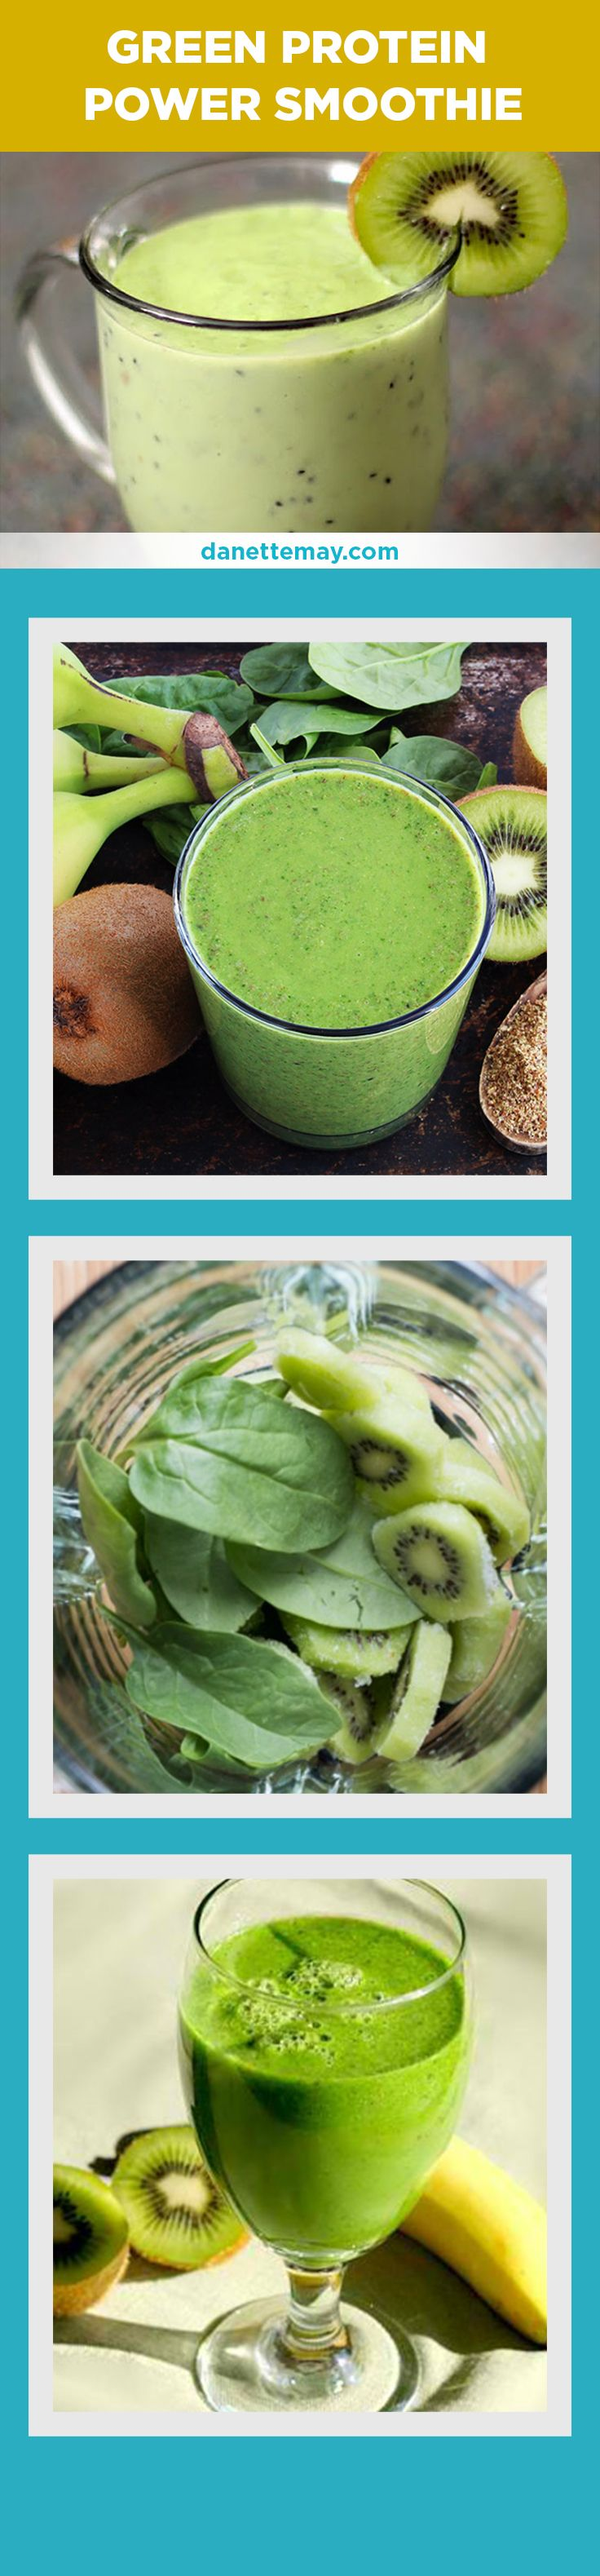 This Green Protein Smoothie Recipe will give you so much energy! Click the image for the recipe.